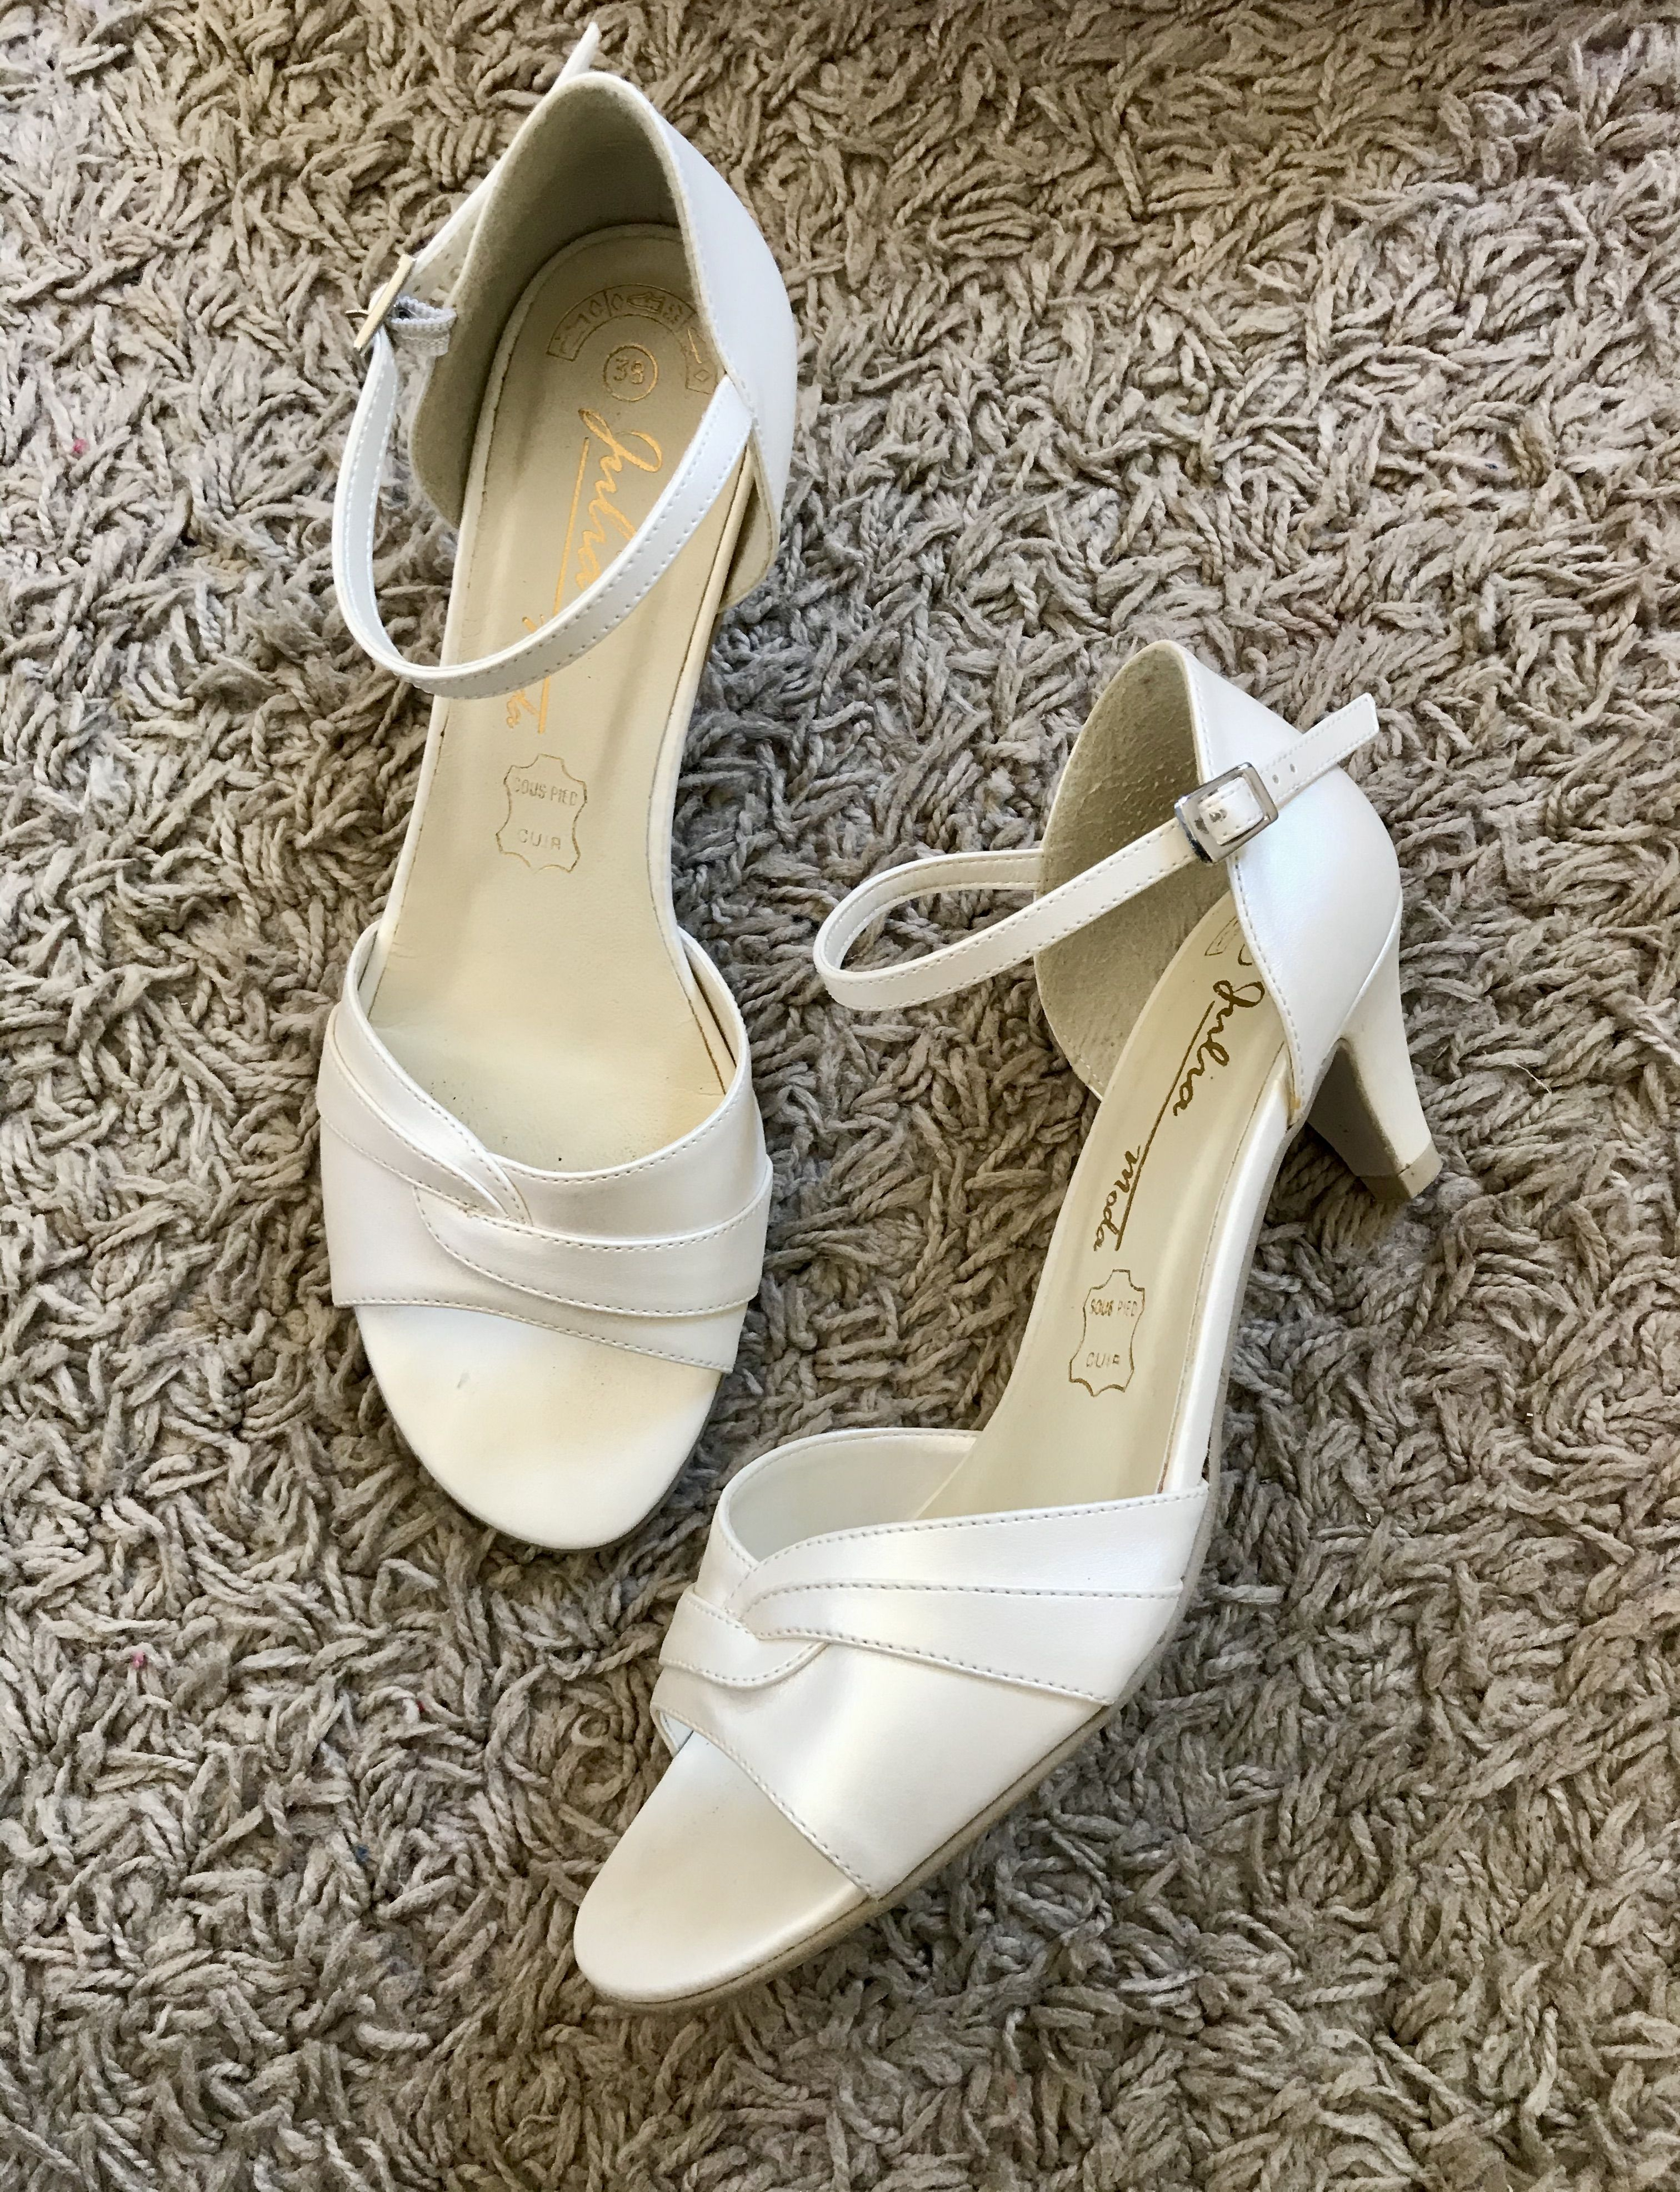 Chaussures de mariage T 38 en 2020 | Chaussure mariage